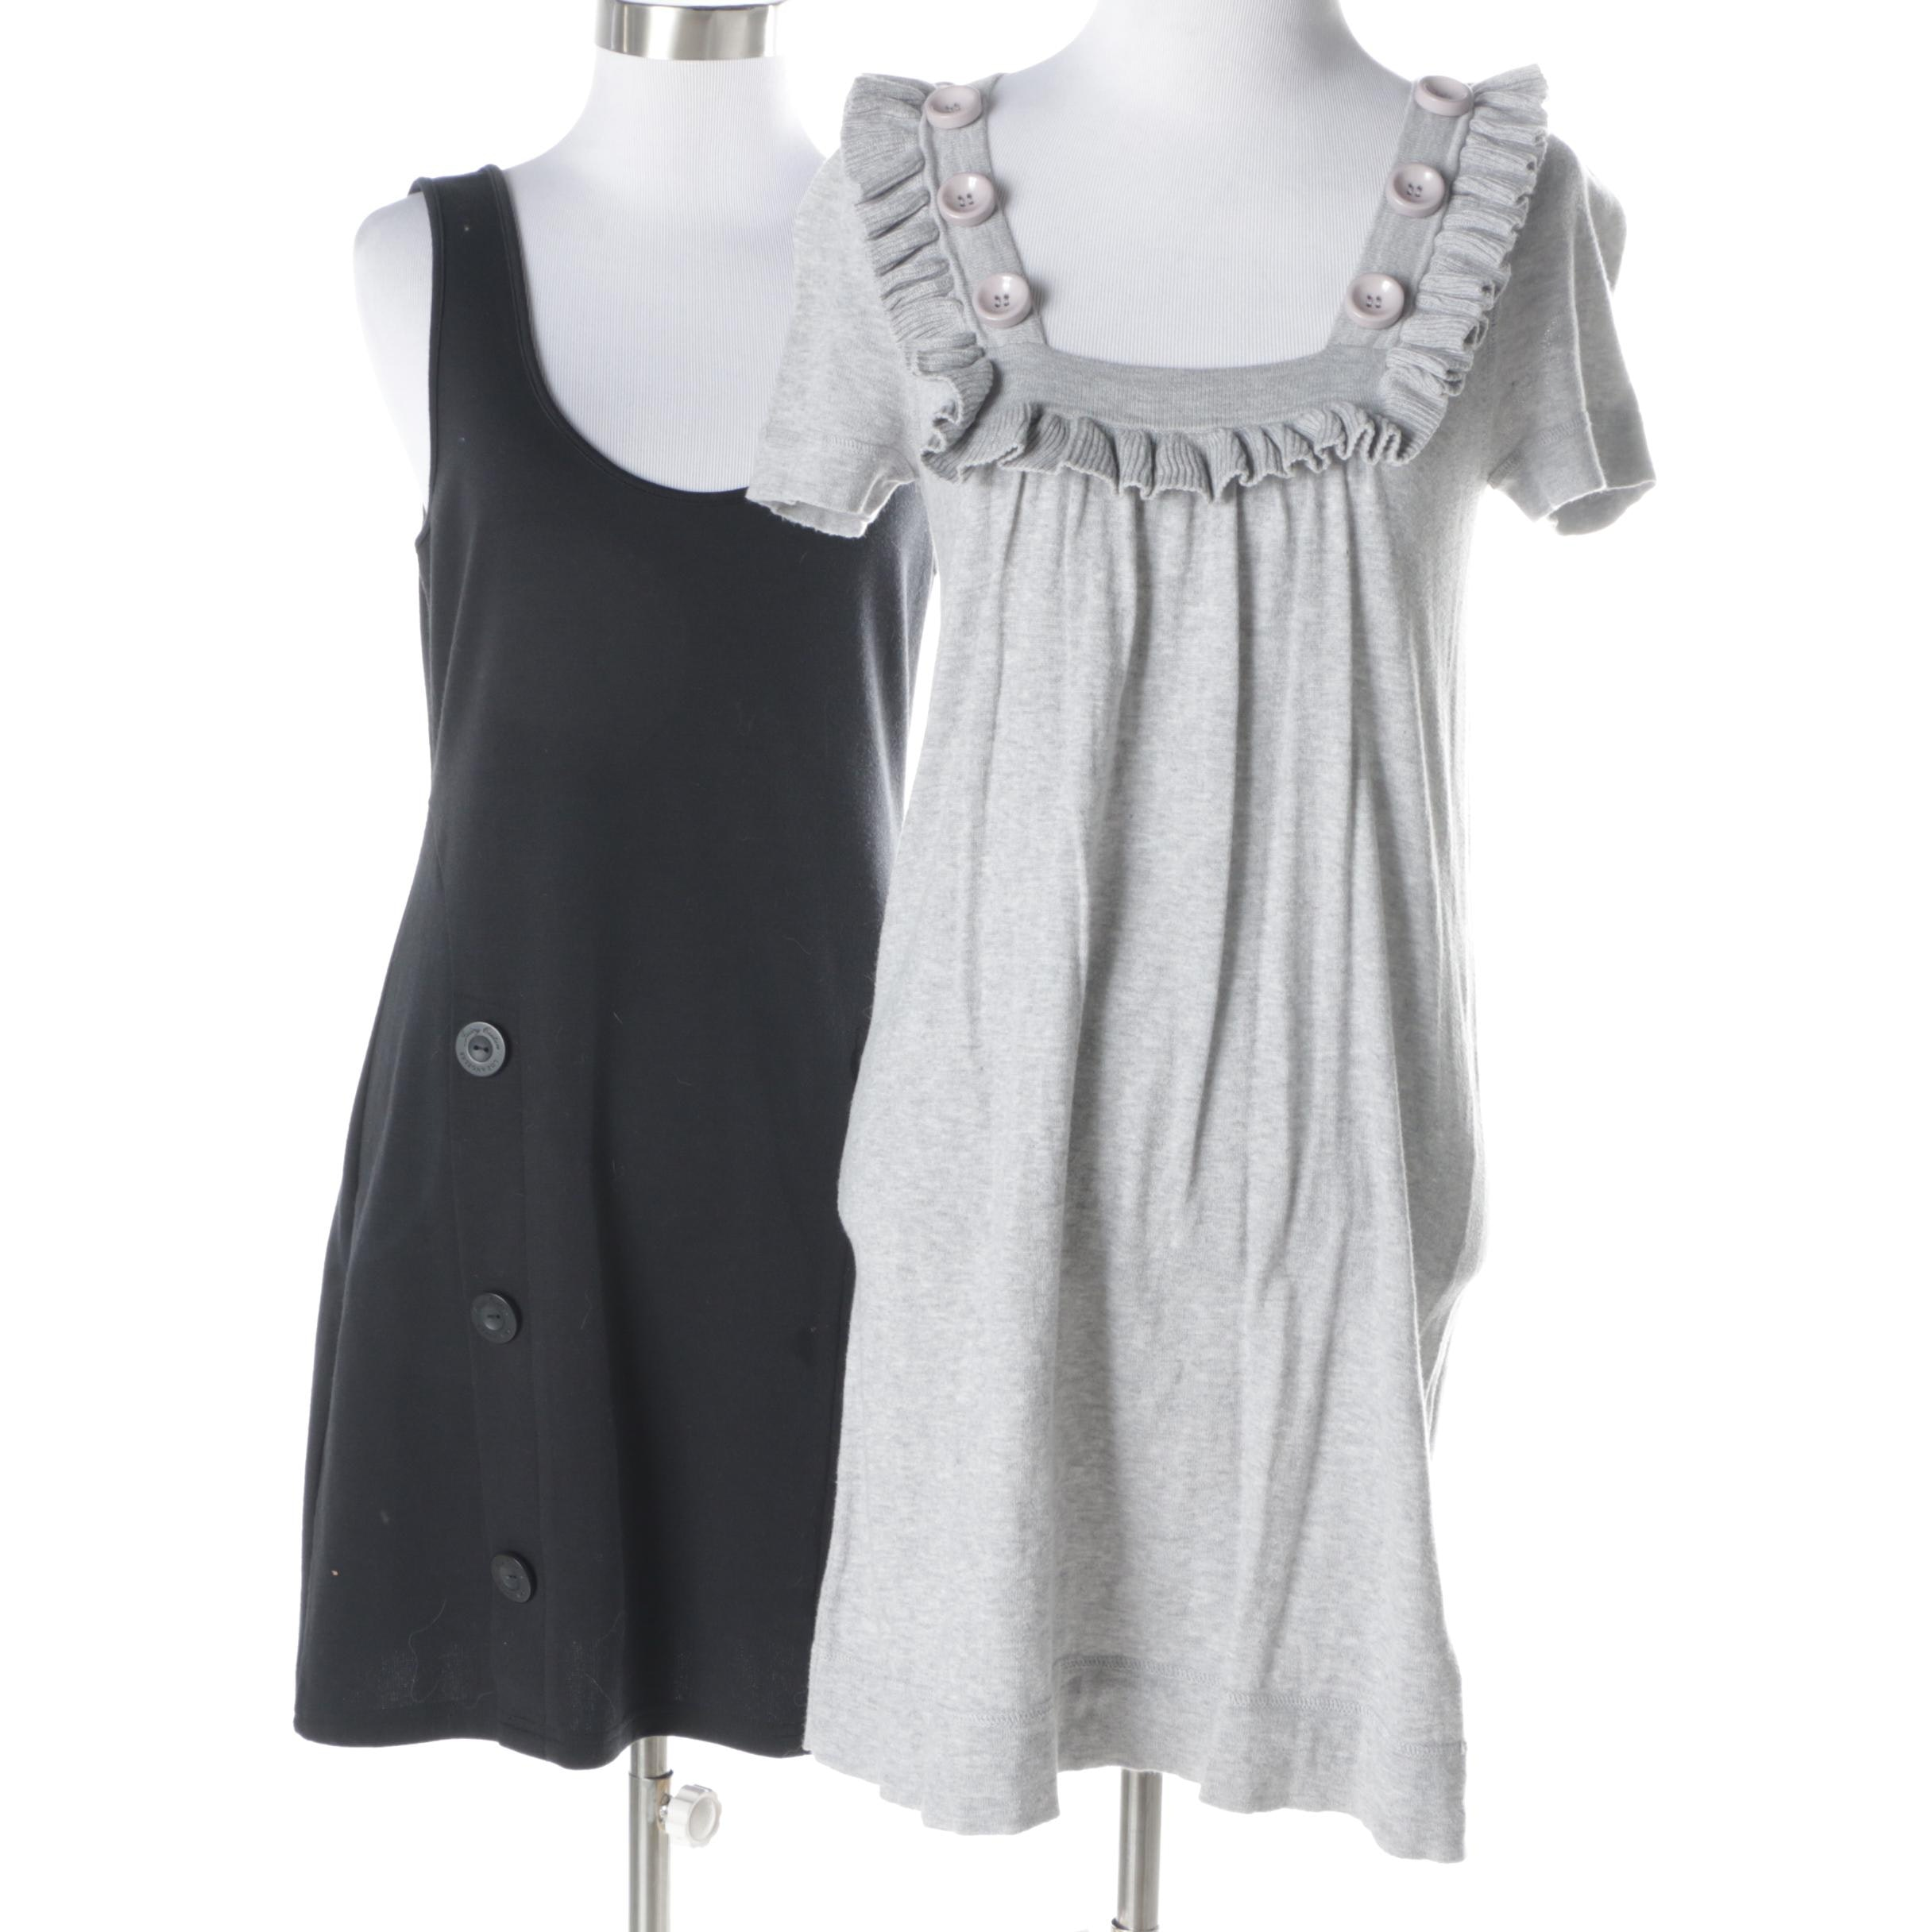 Women's Dresses Featuring Juicy Couture